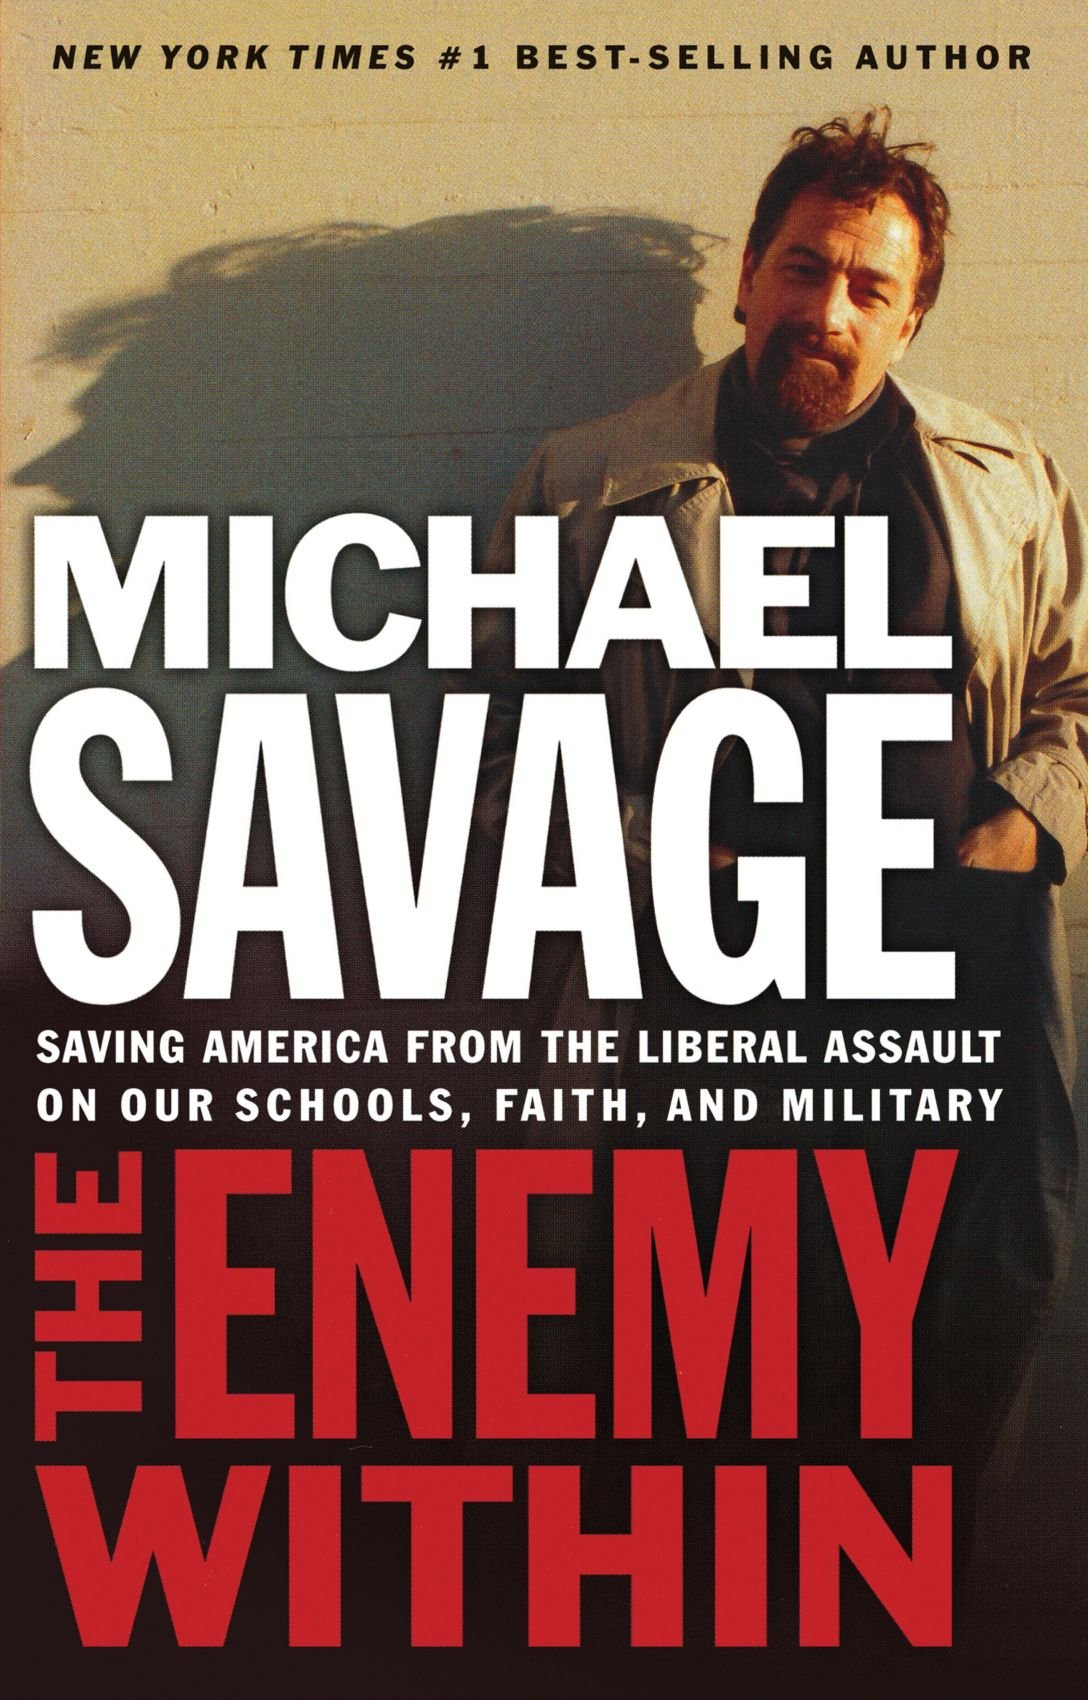 Enemy within saving america from the liberal assault on our enemy within saving america from the liberal assault on our churches schools and military michael savage 9781595550132 amazon books fandeluxe Document